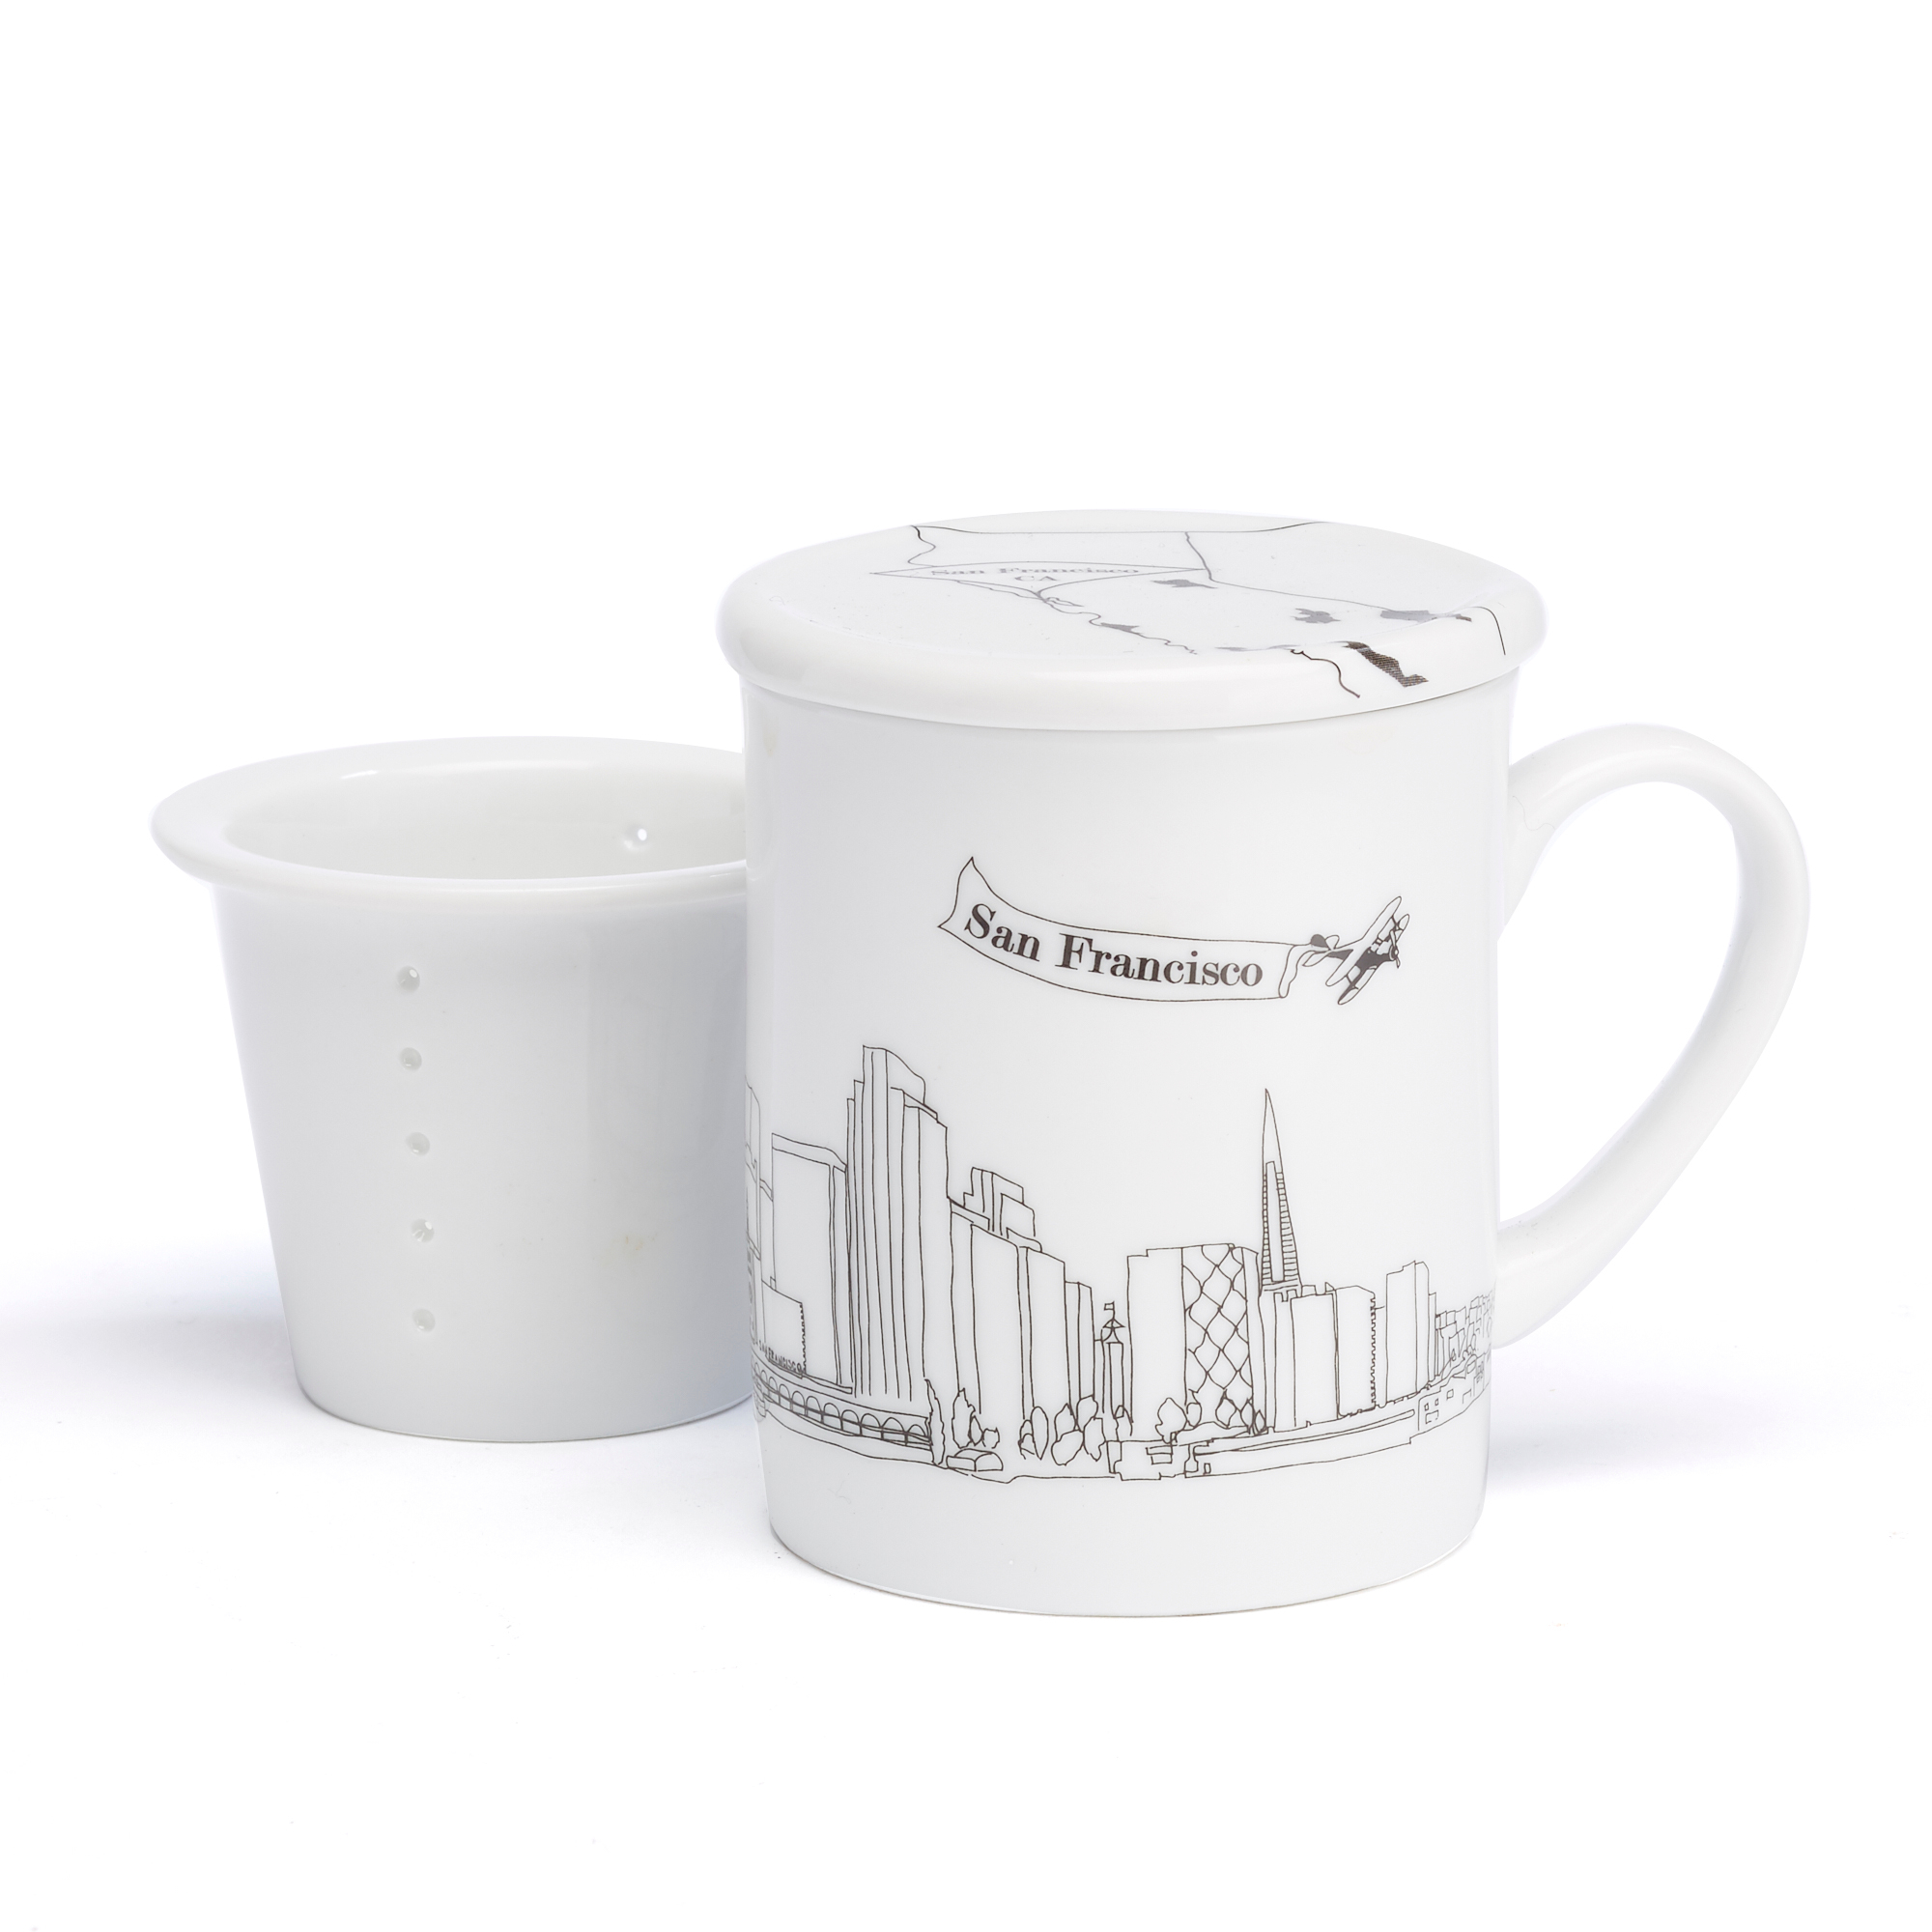 San Francisco City Mug